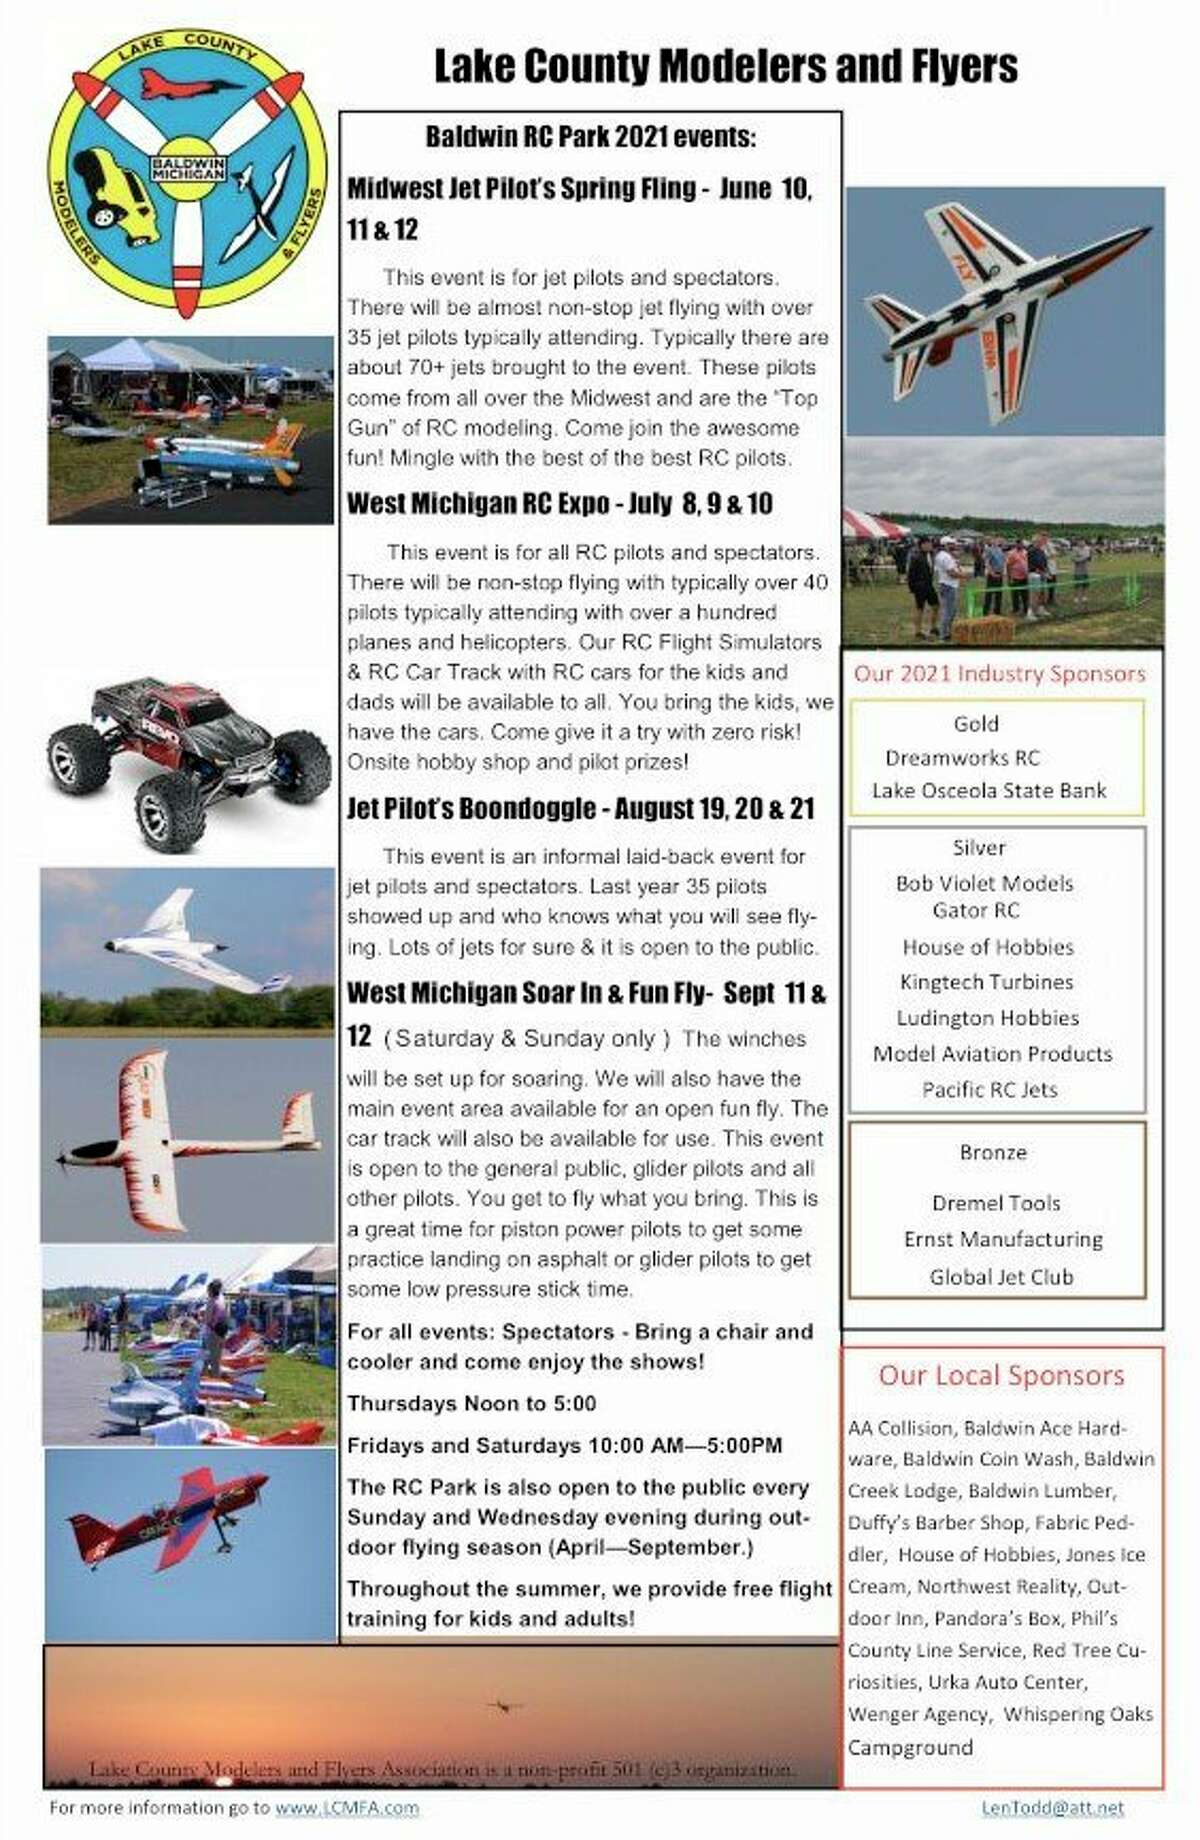 The Lake County Modelers and Flyers has several events planned for the summer. (Submitted photo)